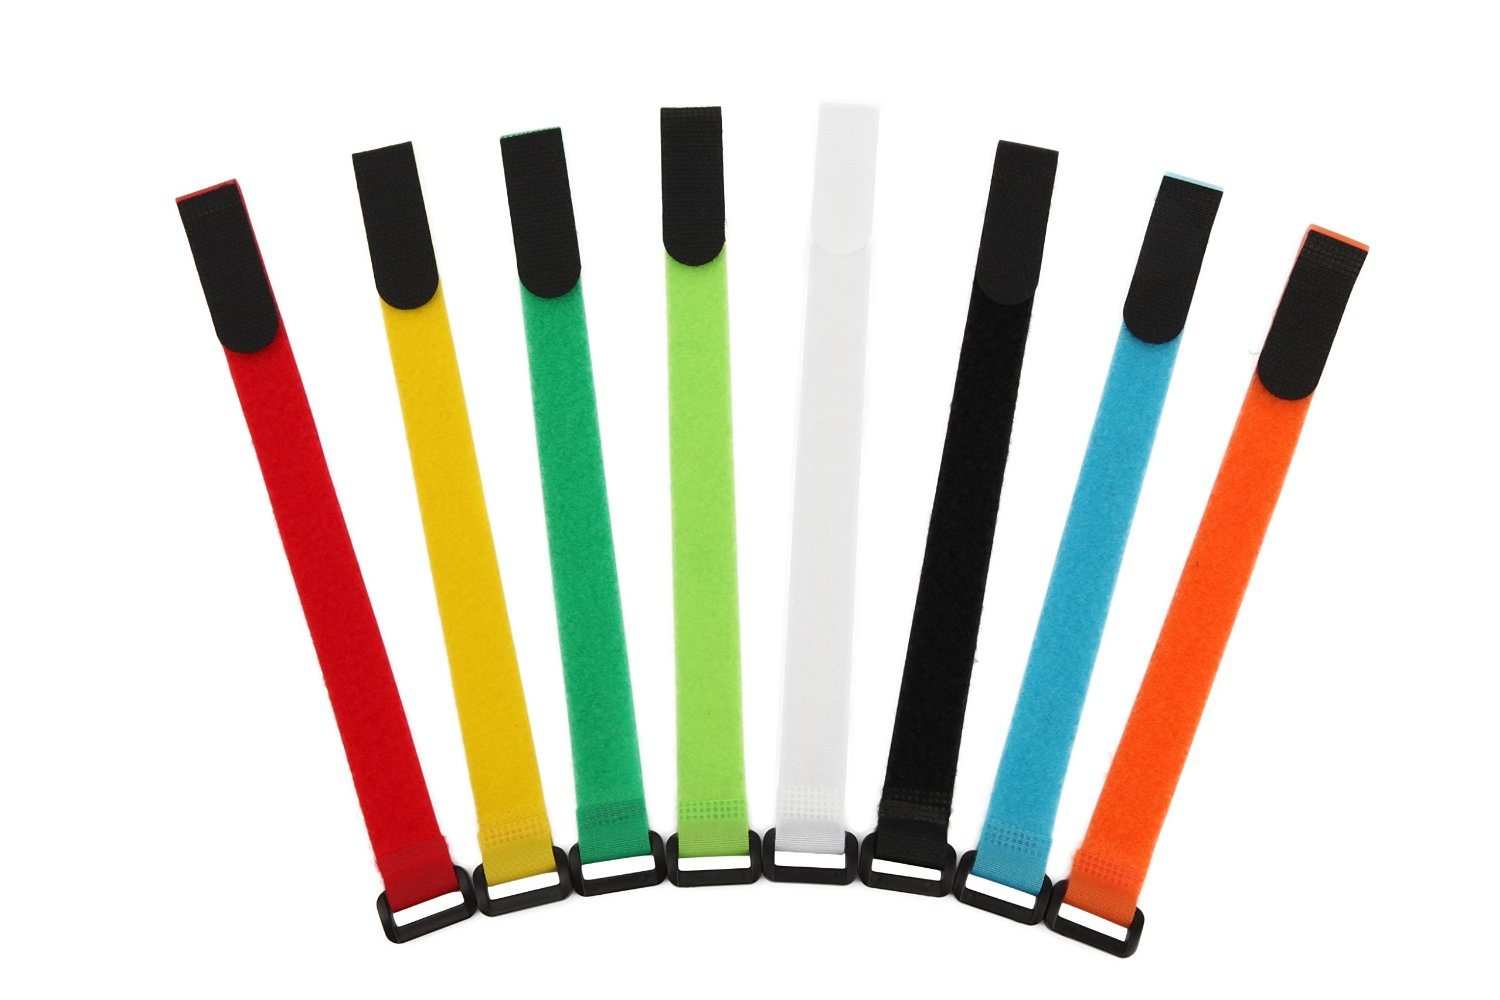 AGPtEK Colorful Nylon Reusable Velcro Cable Ties with Eyelet Holes- Set of 16, 8 Colors